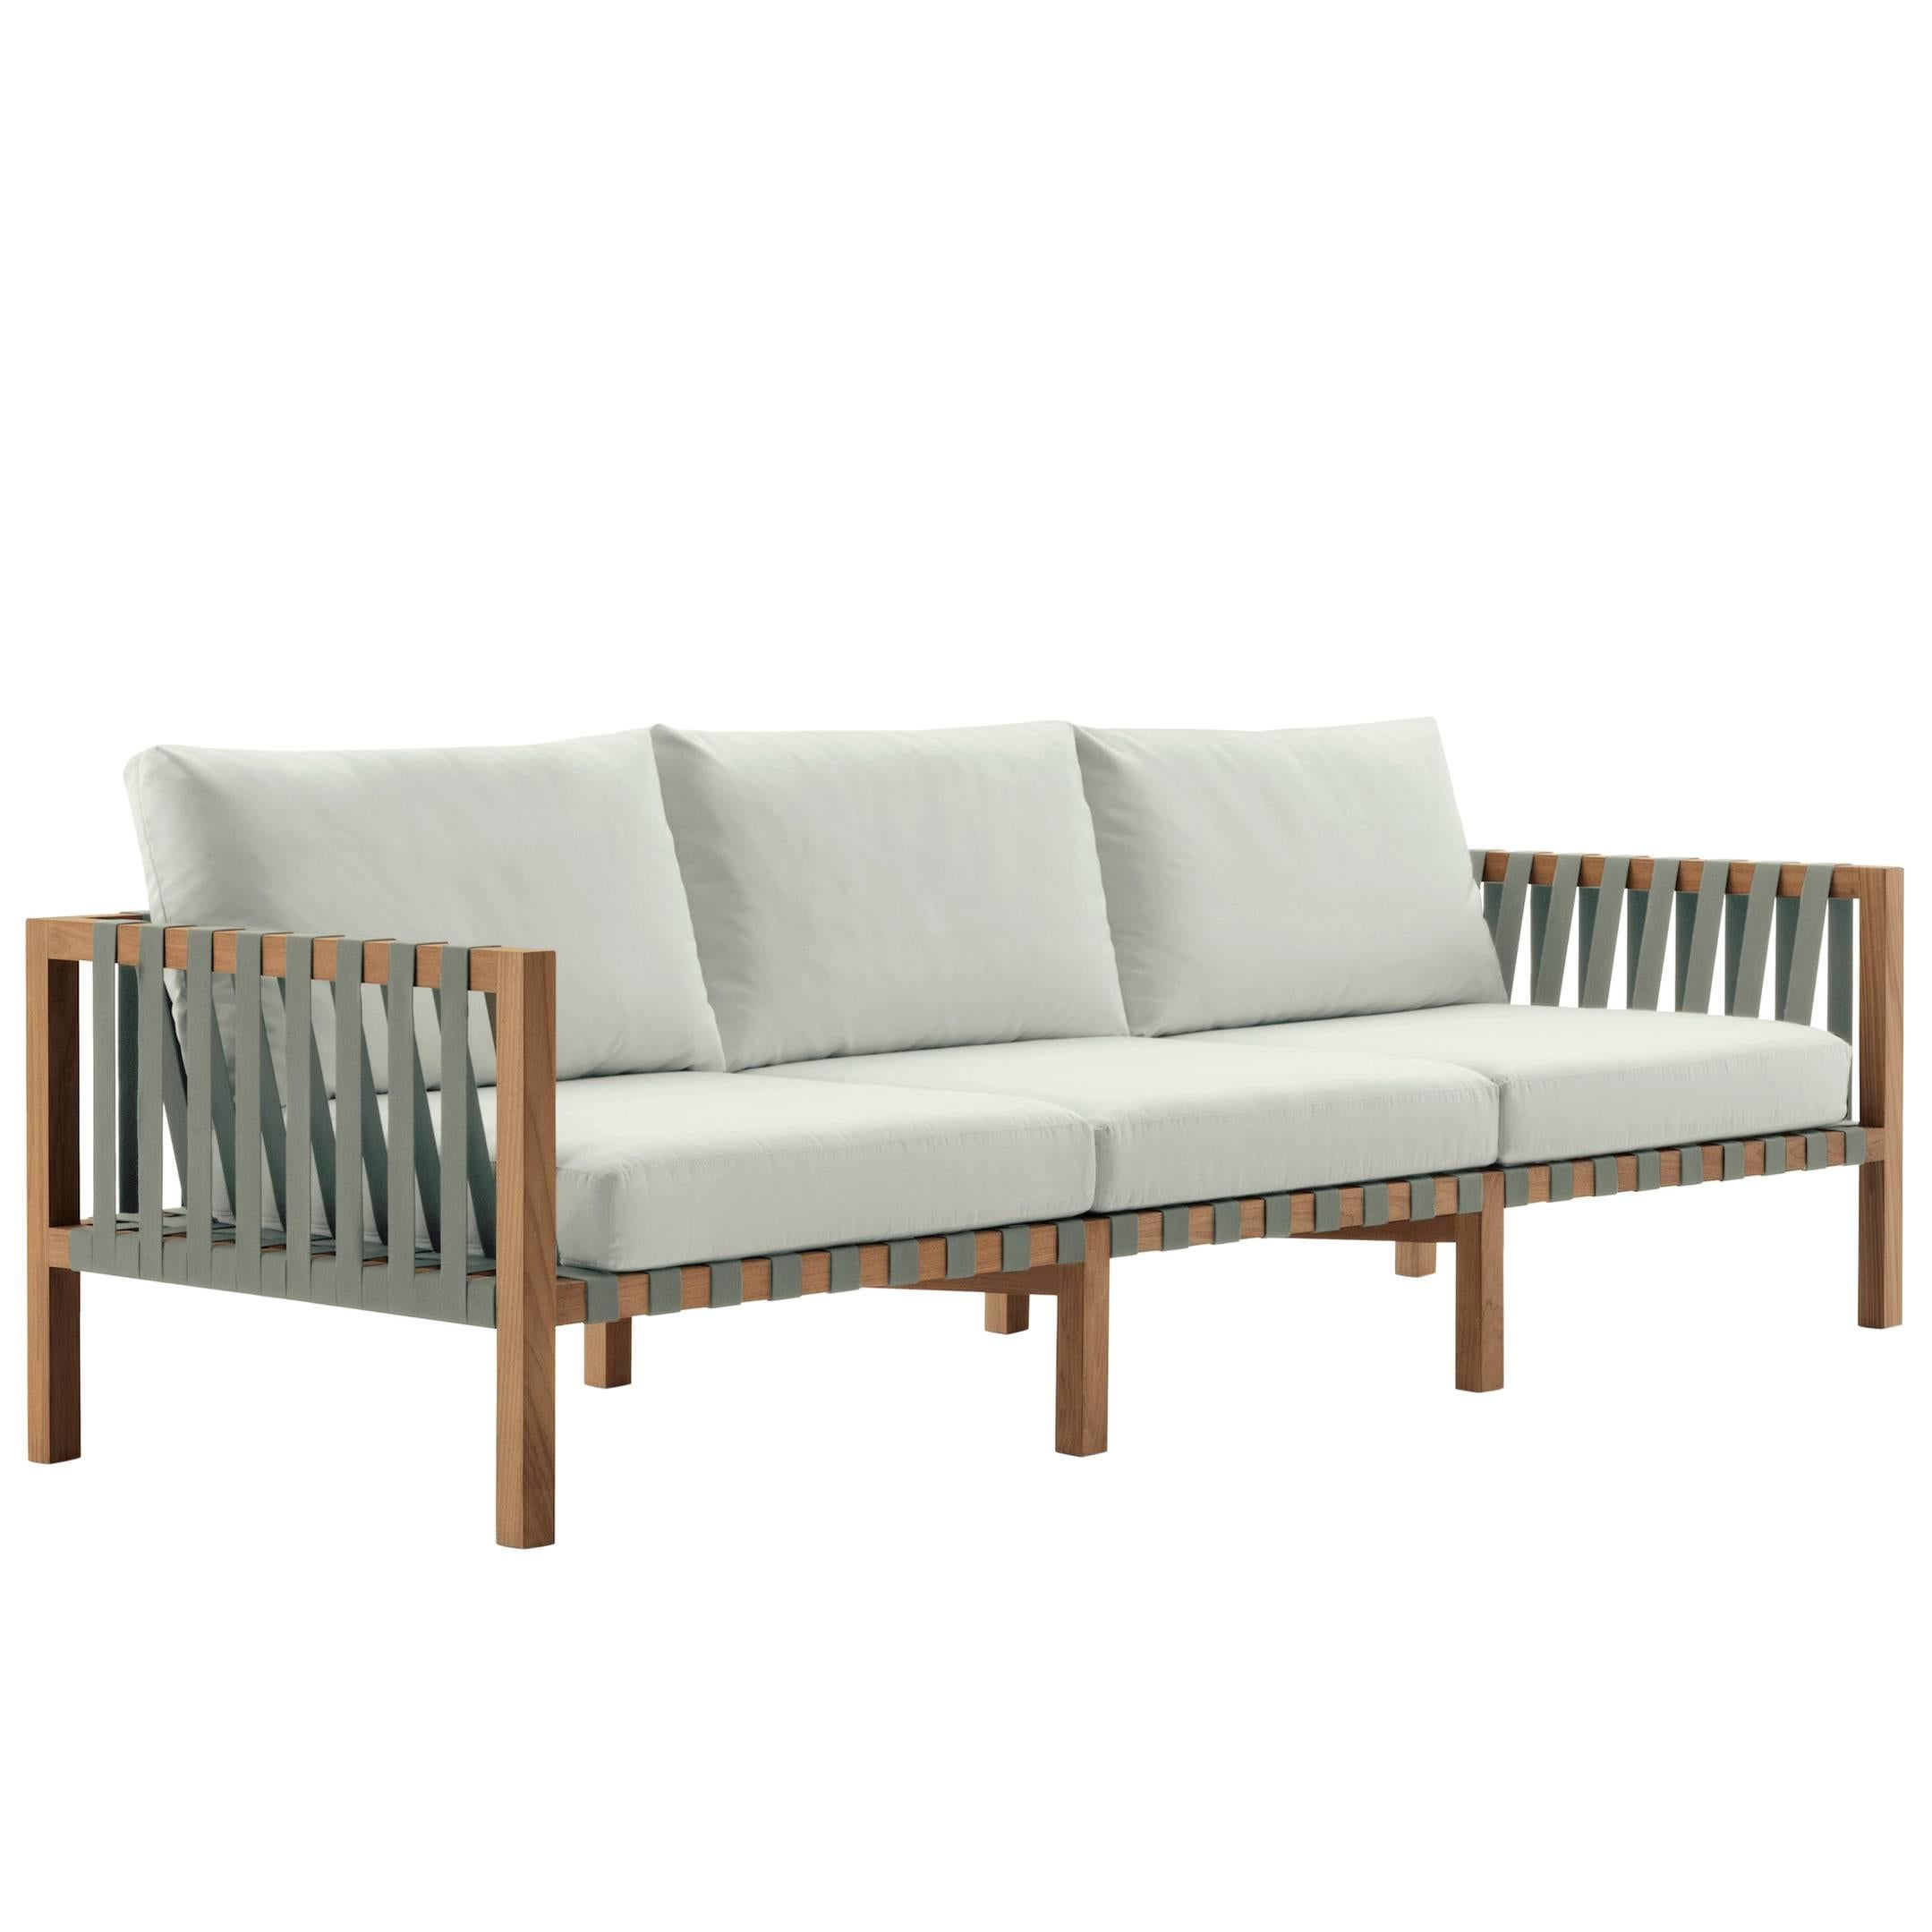 Roda Mistral 103 Three-Seat Sofa in Teak for Outdoor/Indoor Use For ...